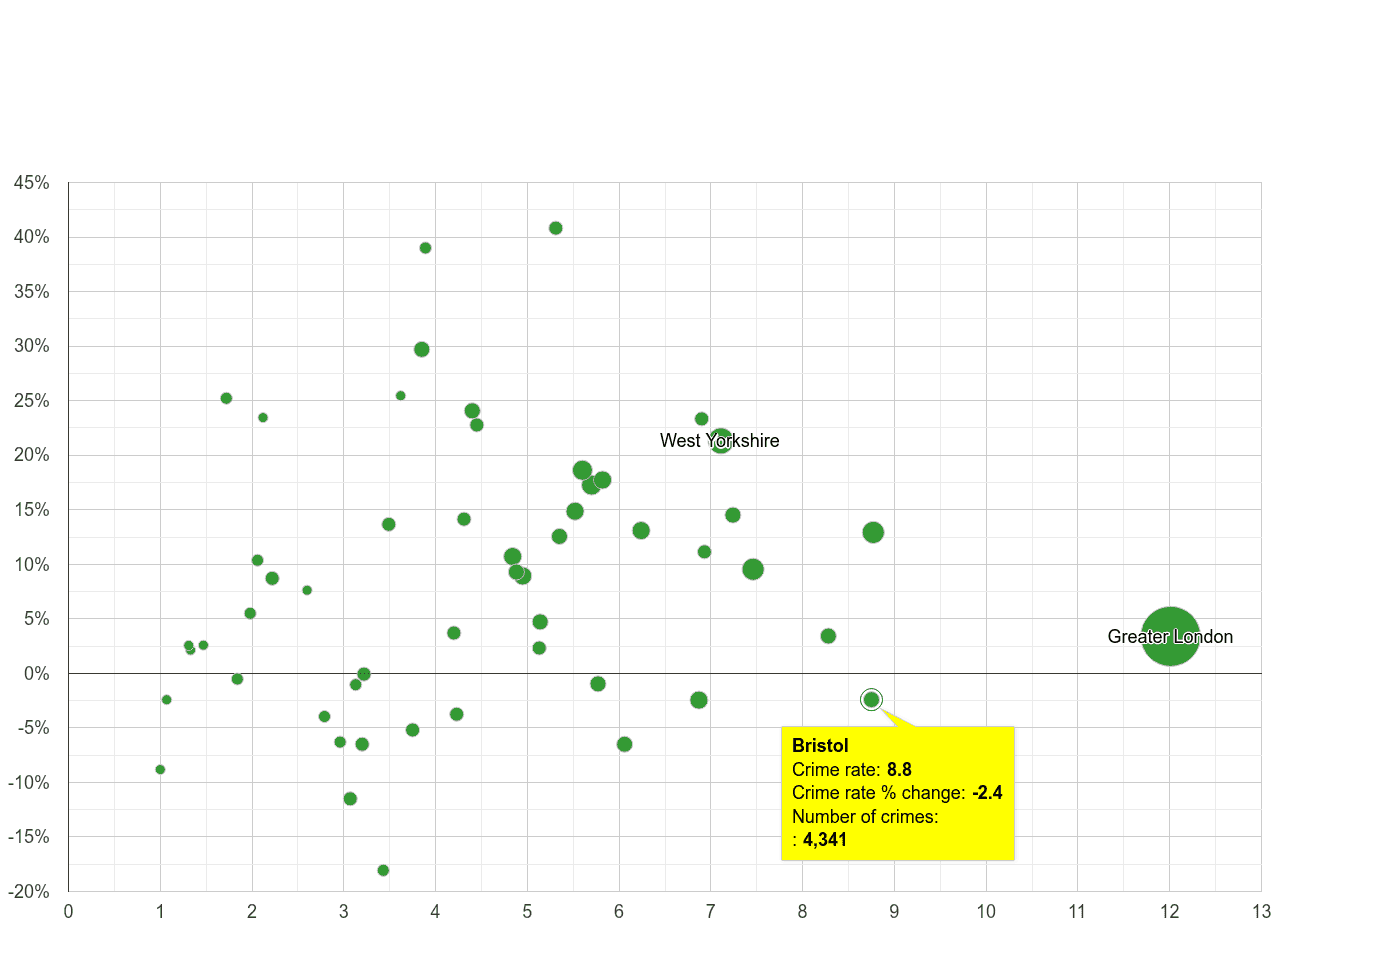 Bristol county vehicle crime rate compared to other counties